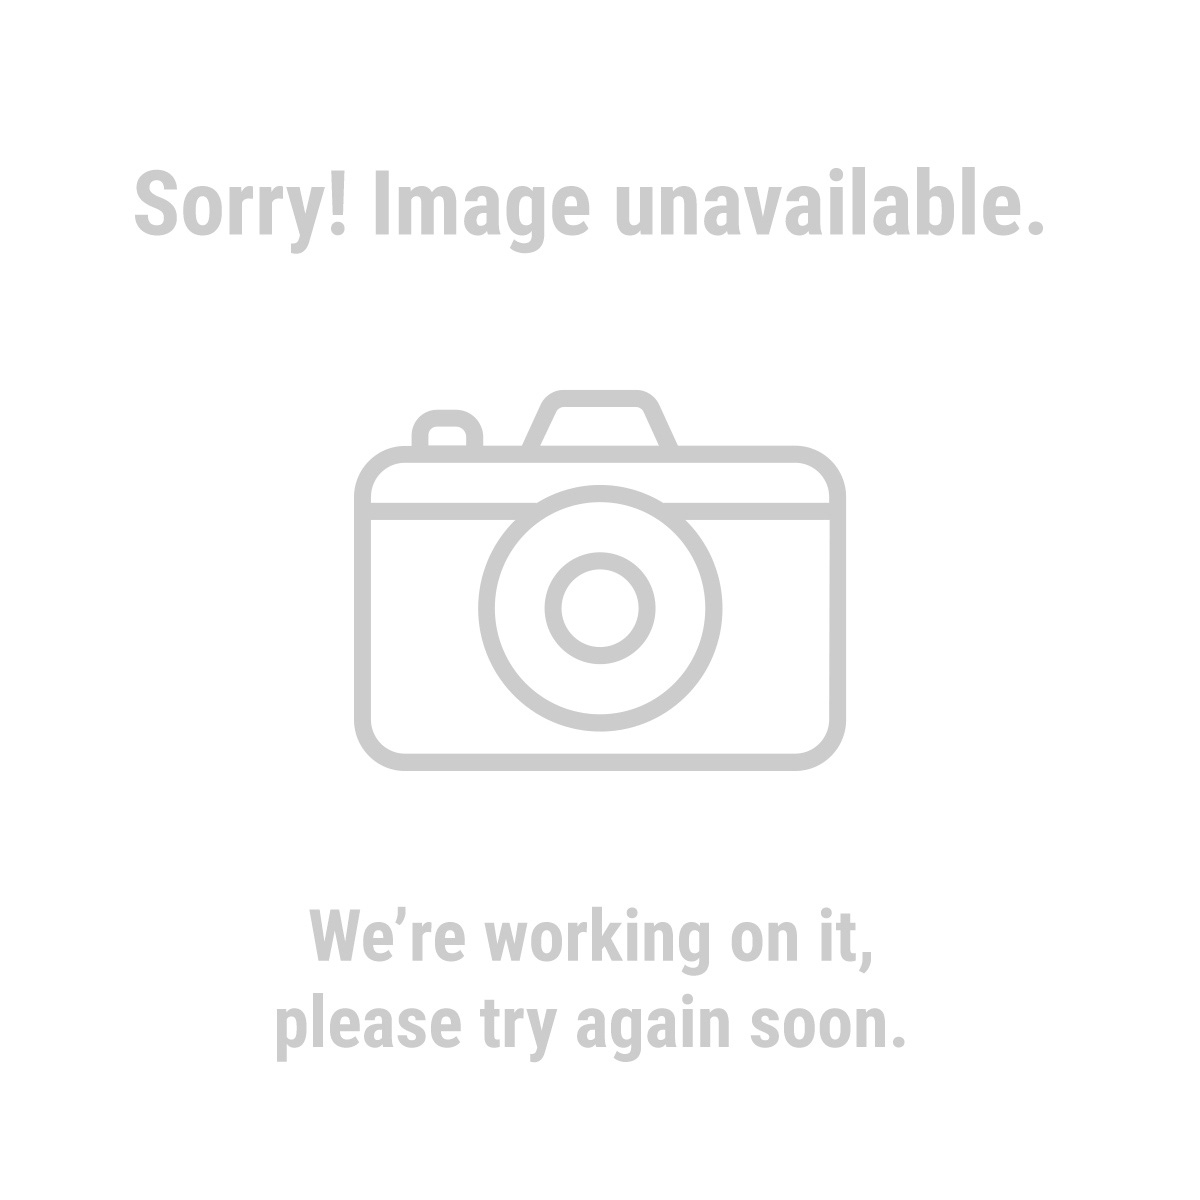 HARDY 95639 PVC Dot Gloves, 3 Pair